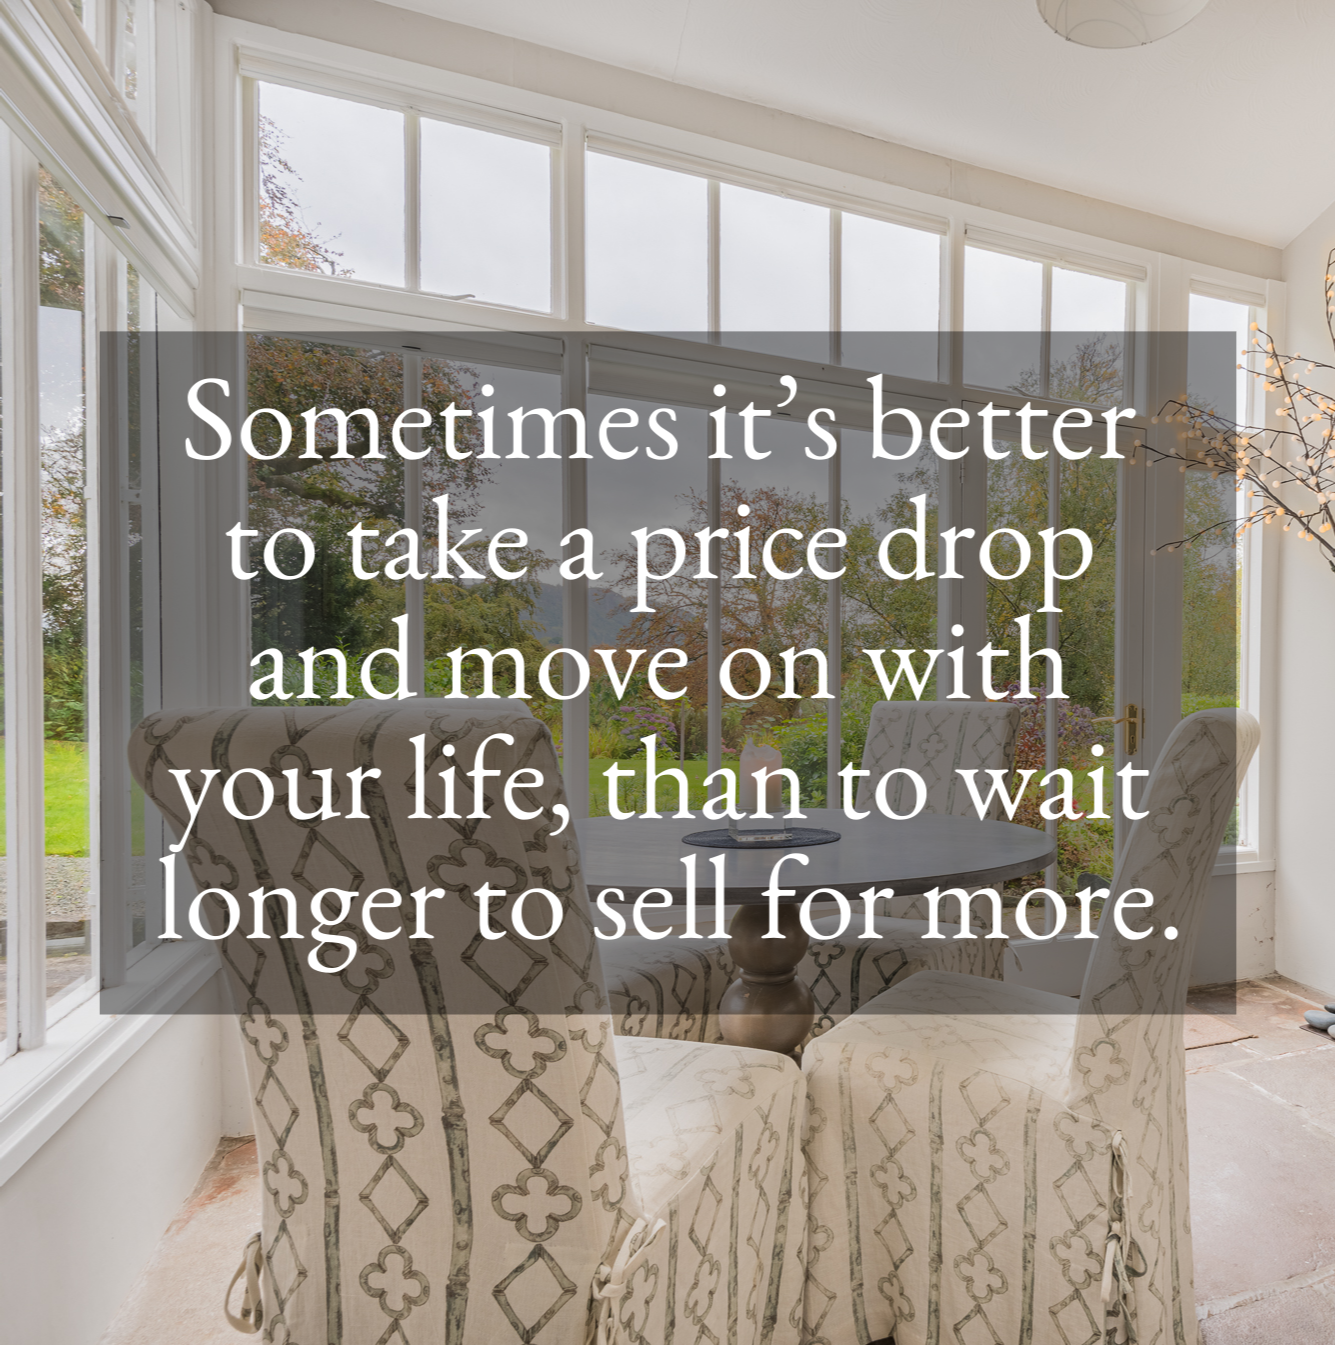 tg12-sometimes-its-better-to-take-a-price-drop-and-move-on-with-your-life